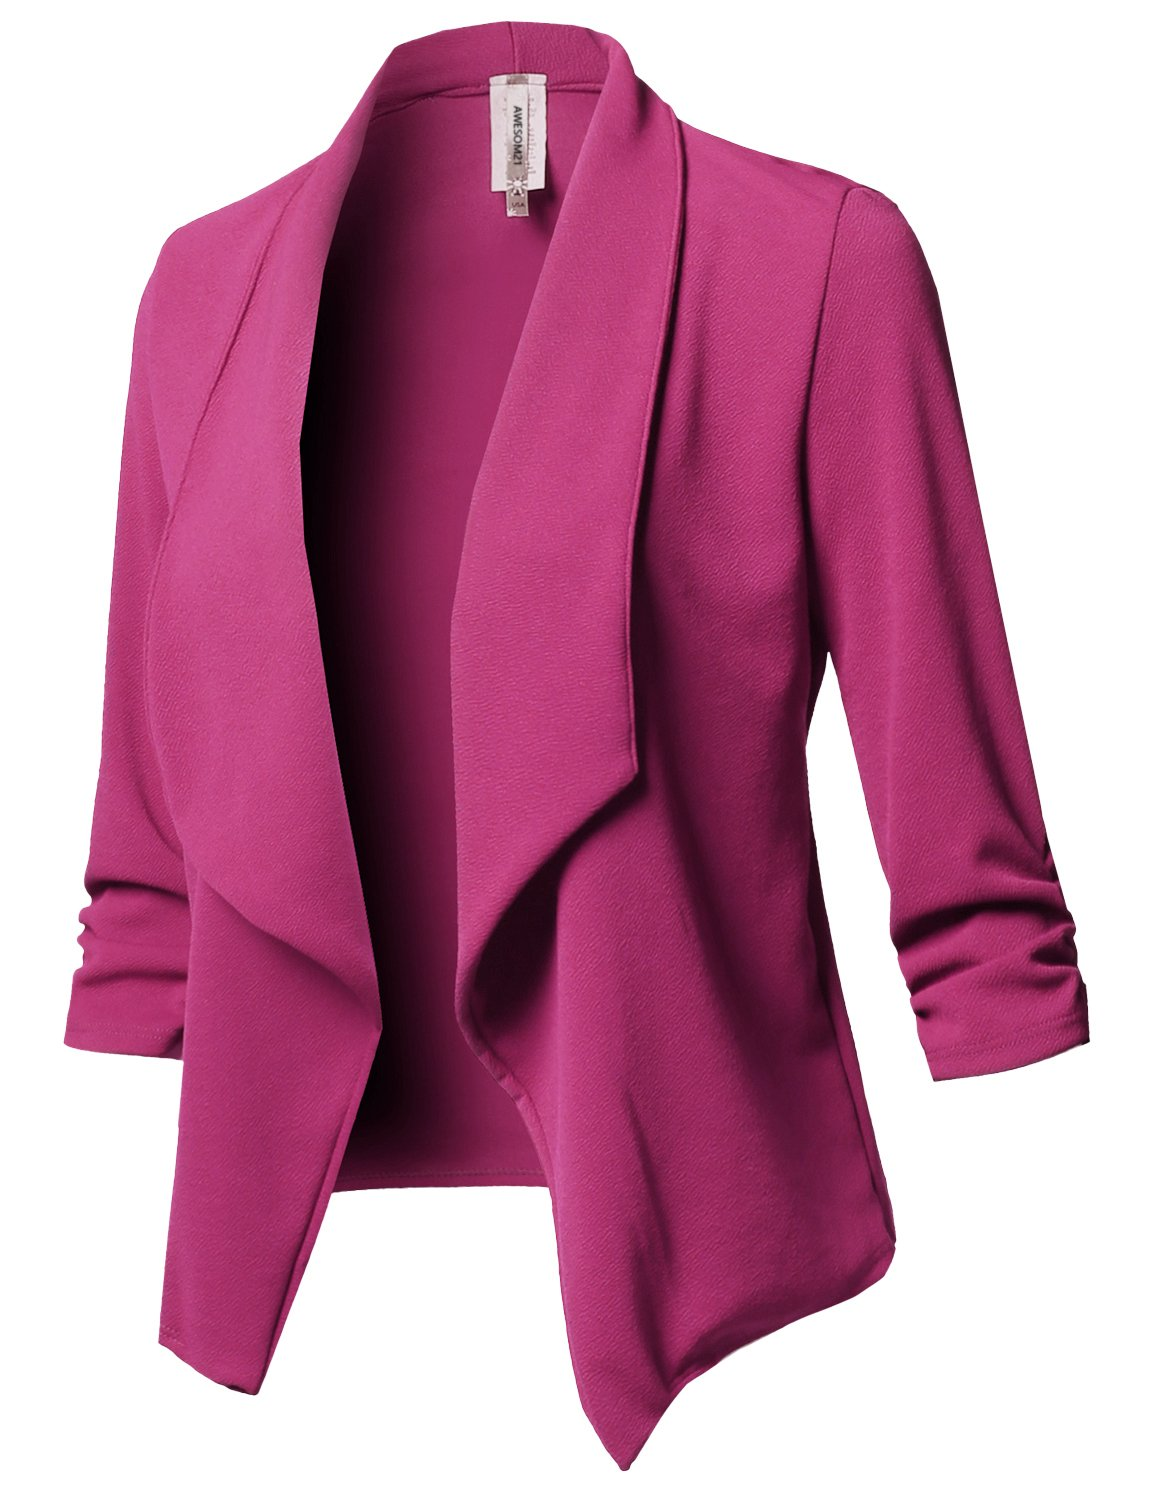 Awesome21 Stretch 3/4 Gathered Sleeve Open Blazer Jacket Magenta2 Size 2XL